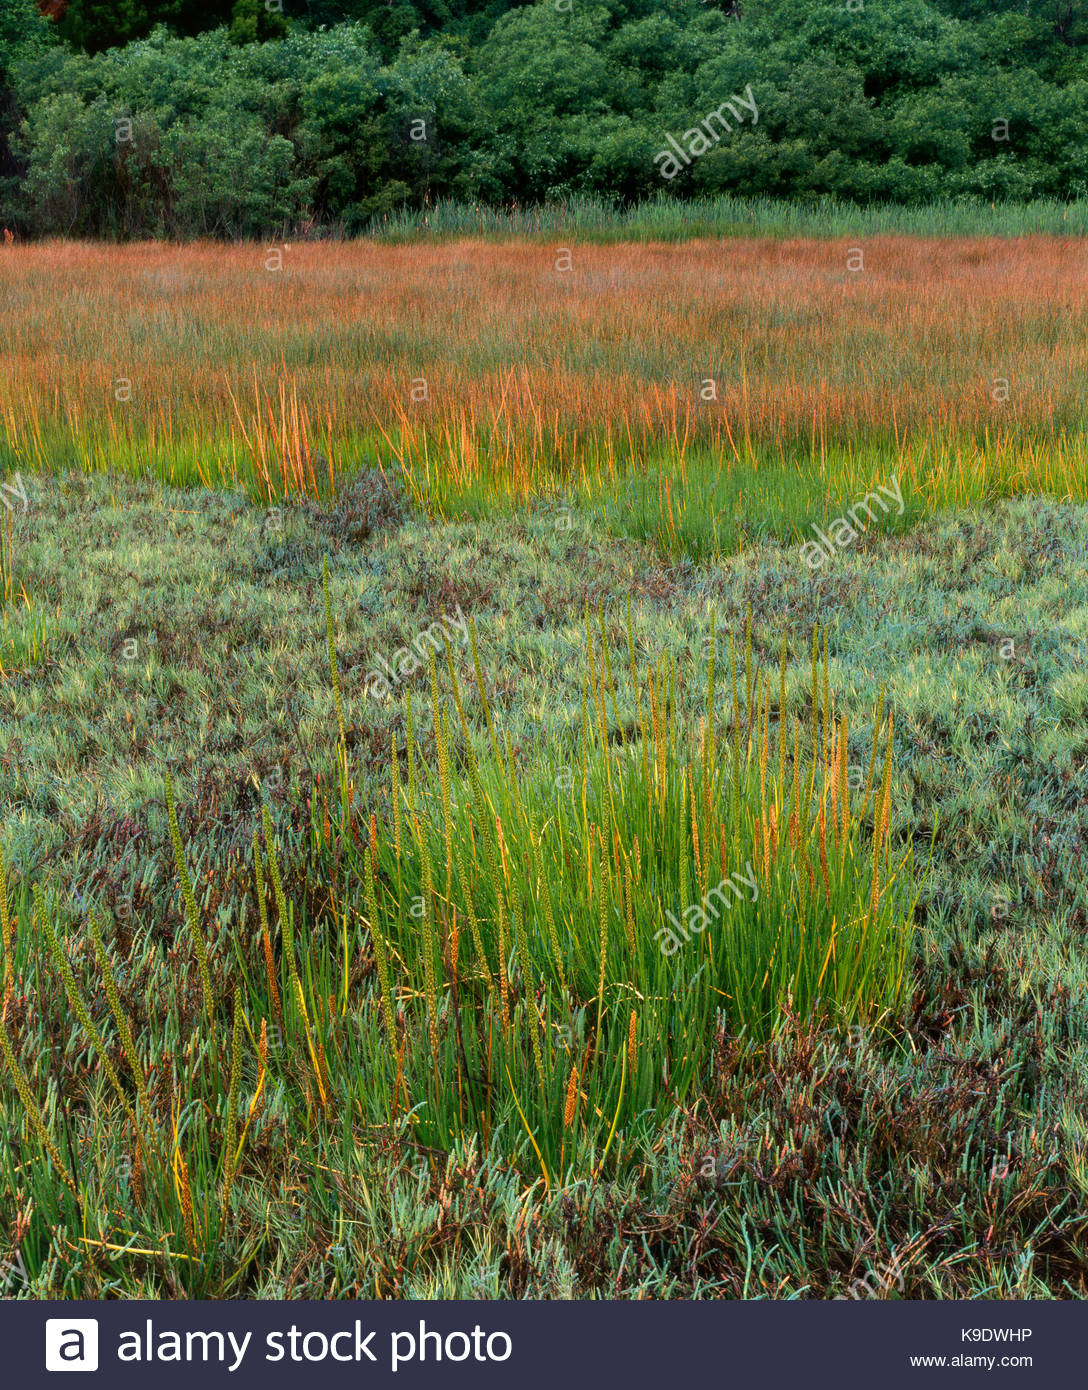 Arrow Grass, Salt Grass and Pckle Weed,Tidal Marsh Study Area on Tomales Bay,Marin County, California - Stock Image